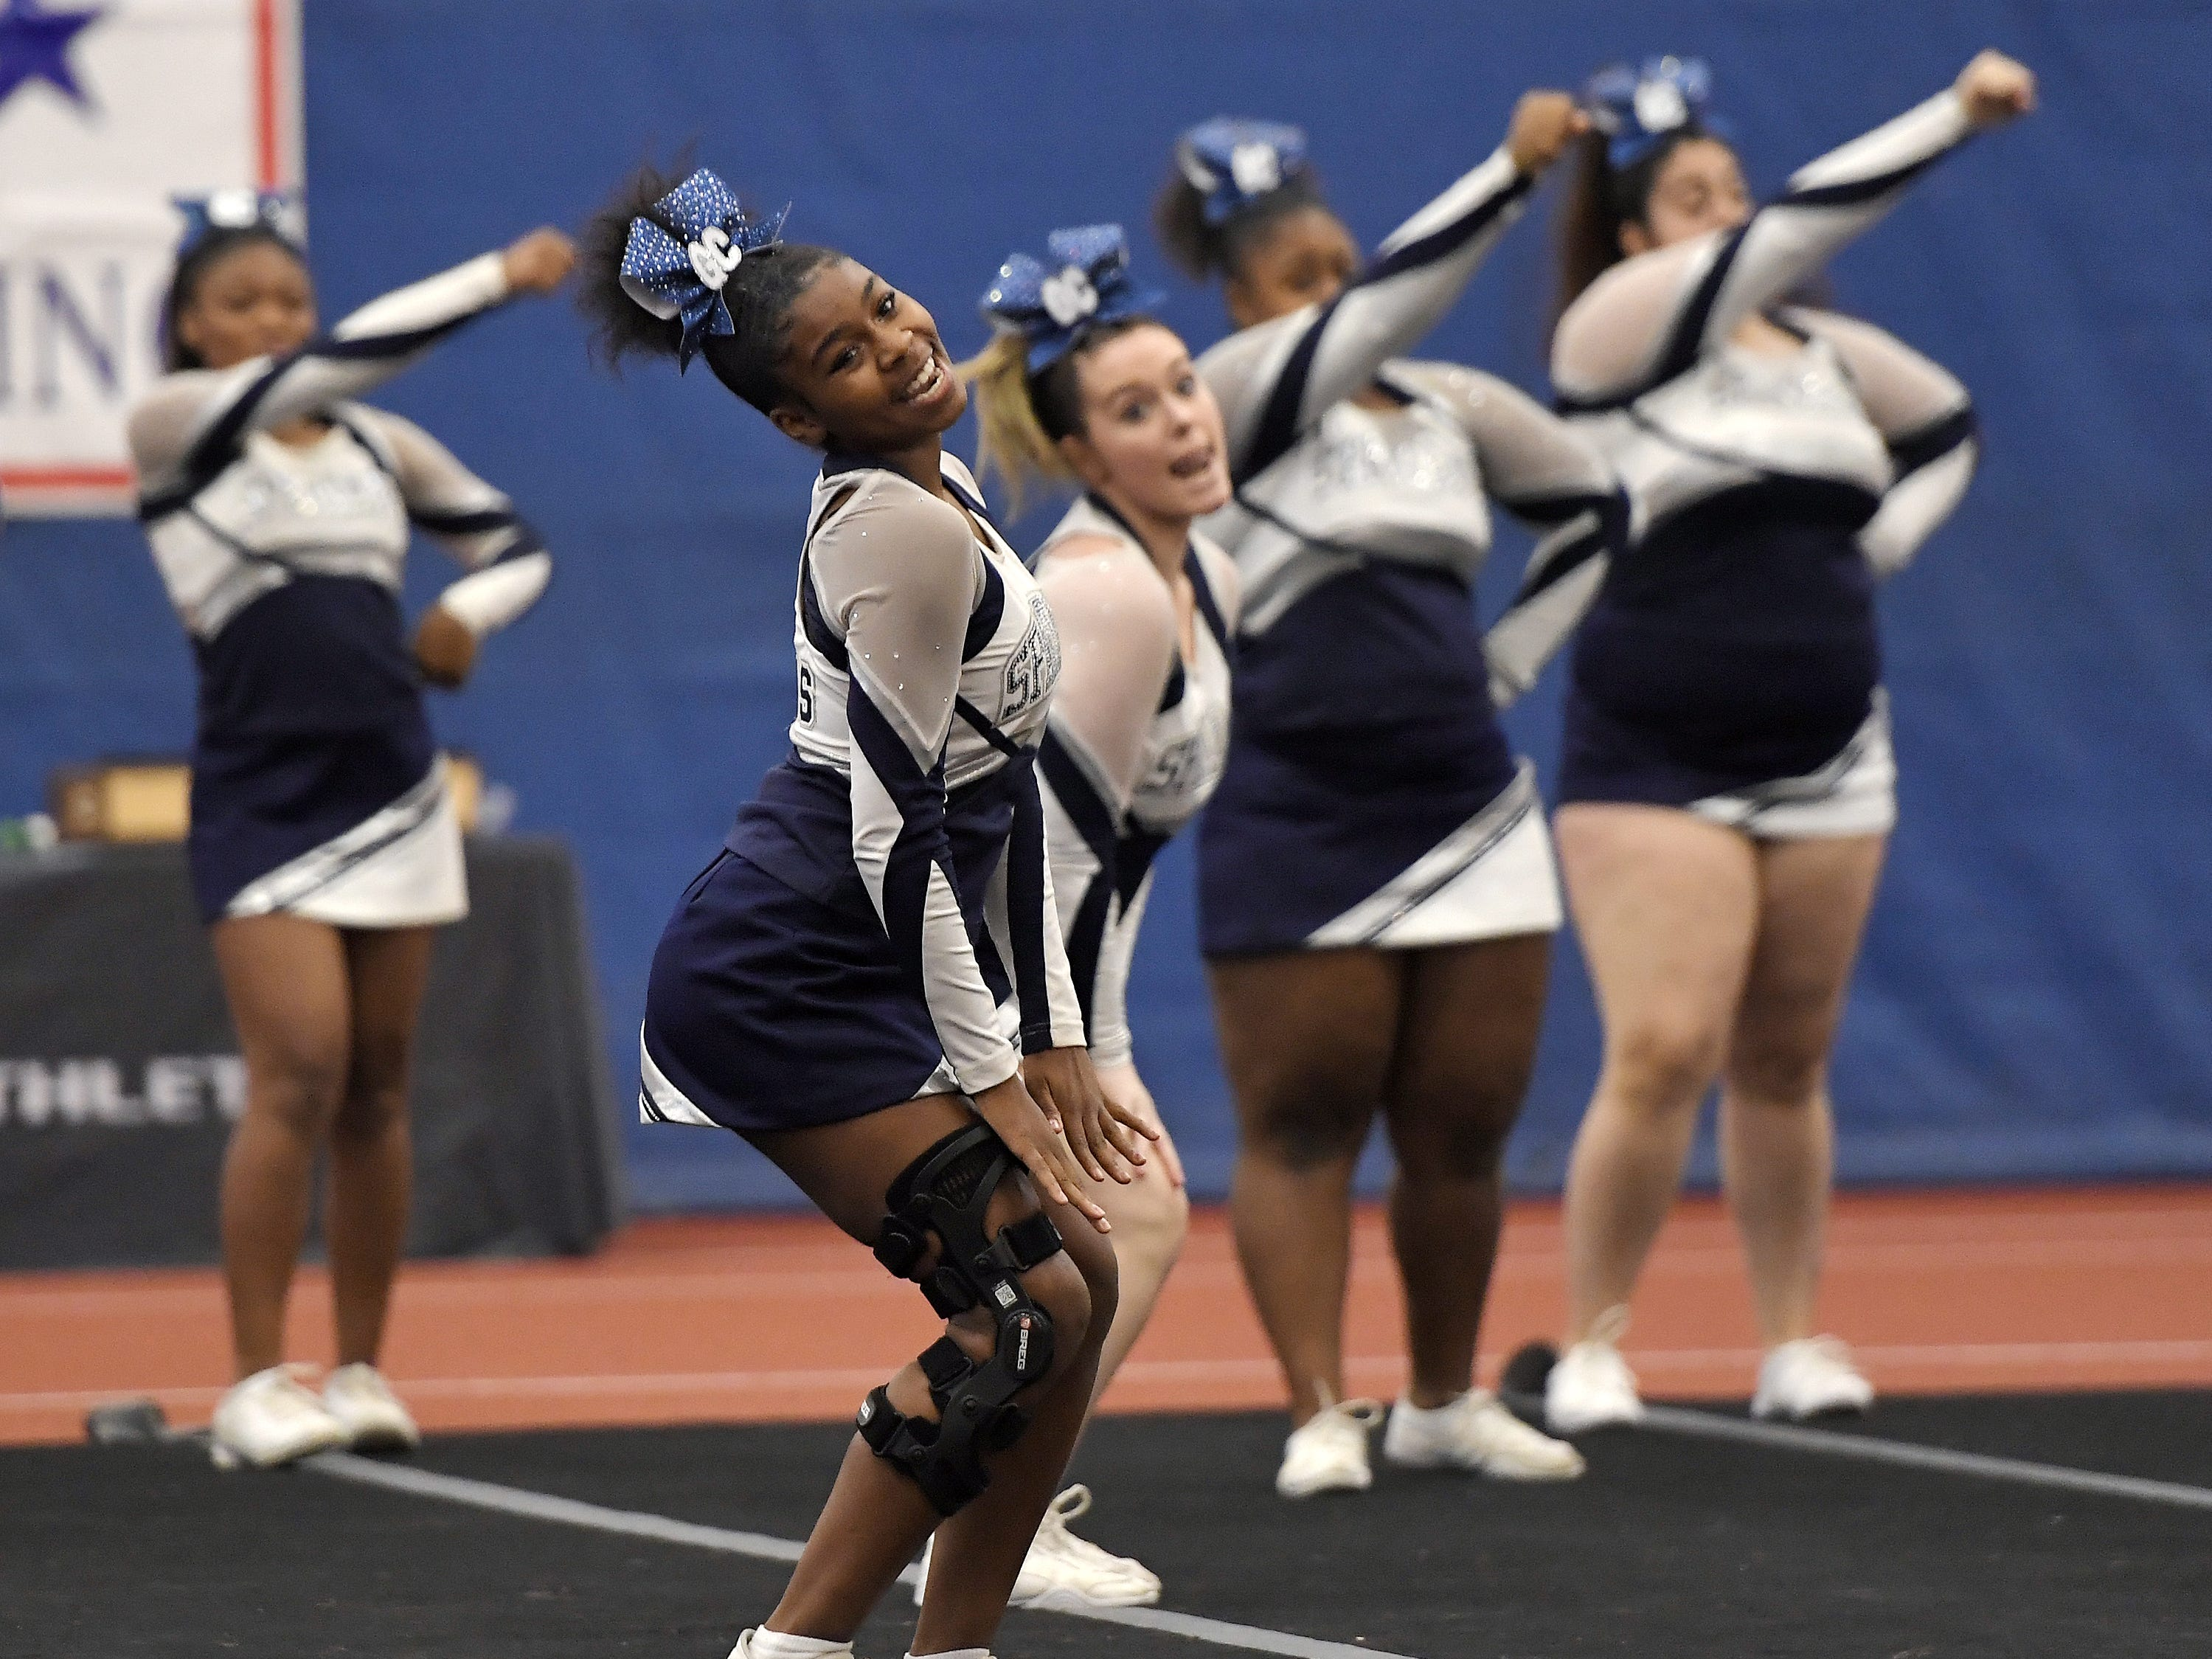 Gates Chili cheerleaders perform their routine during the Section V Fall Cheerleading Championships at RIT, Saturday, Oct. 27, 2018.